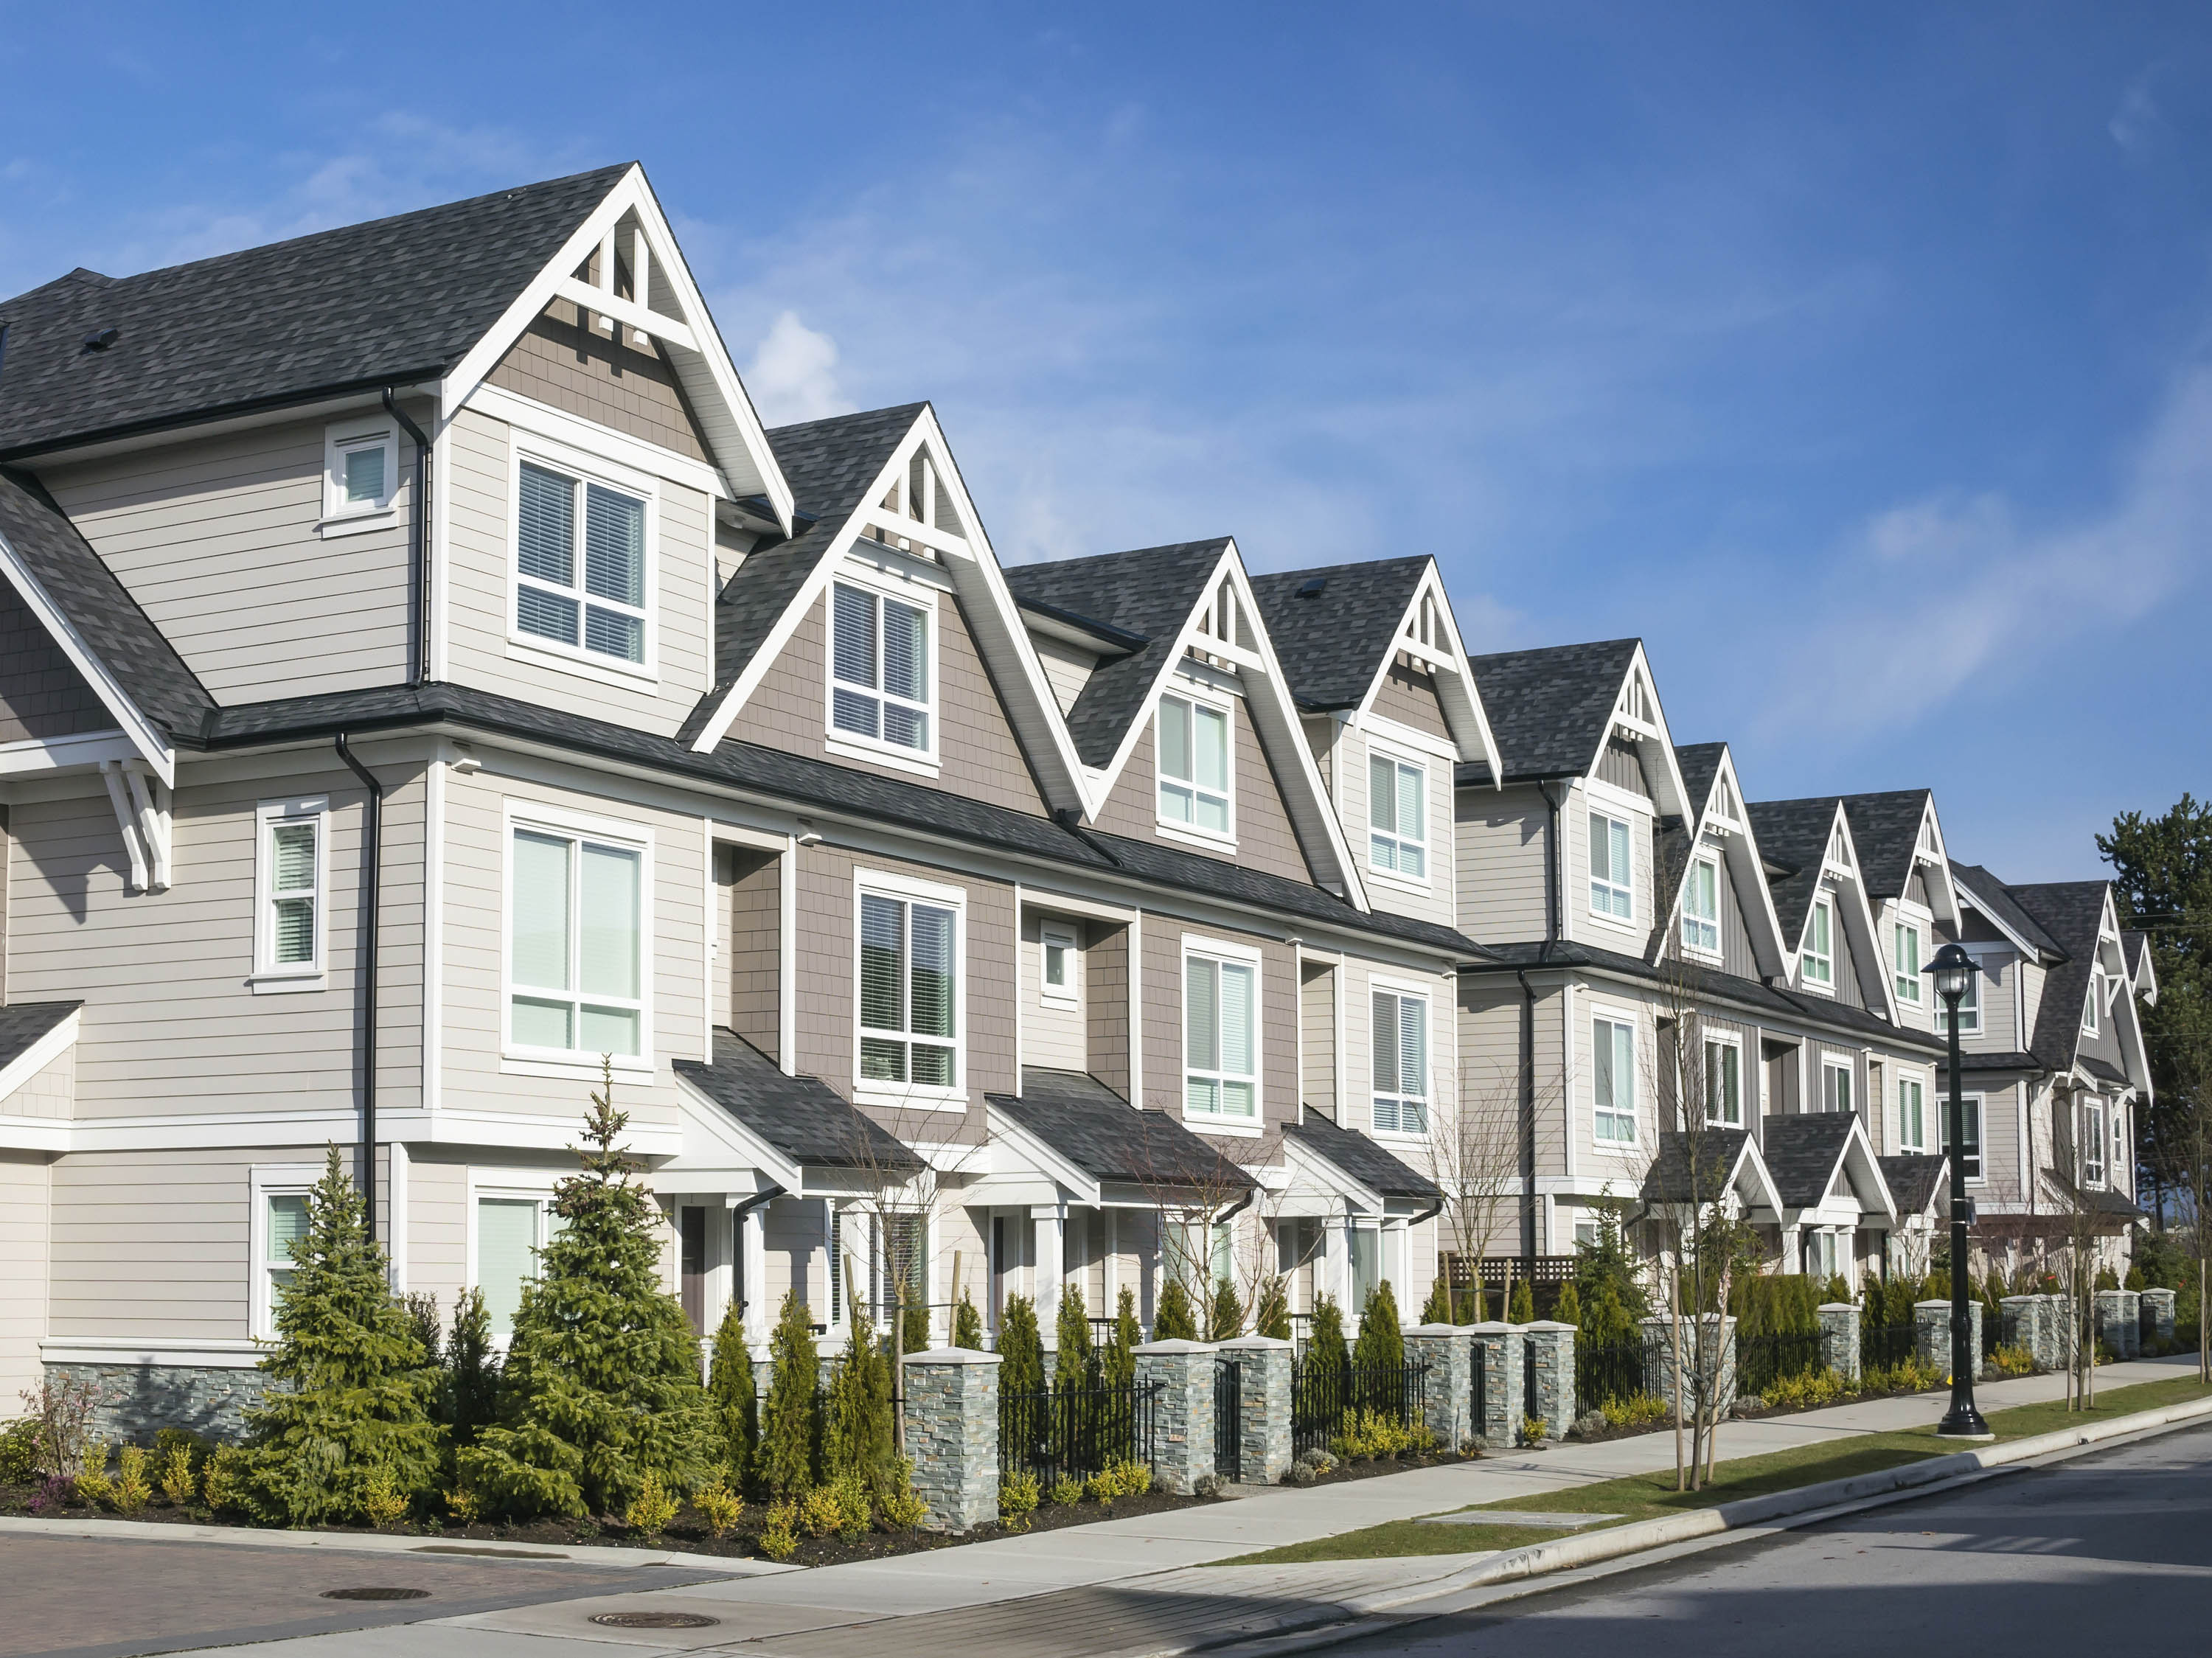 Service and Property Management Needing Builders License